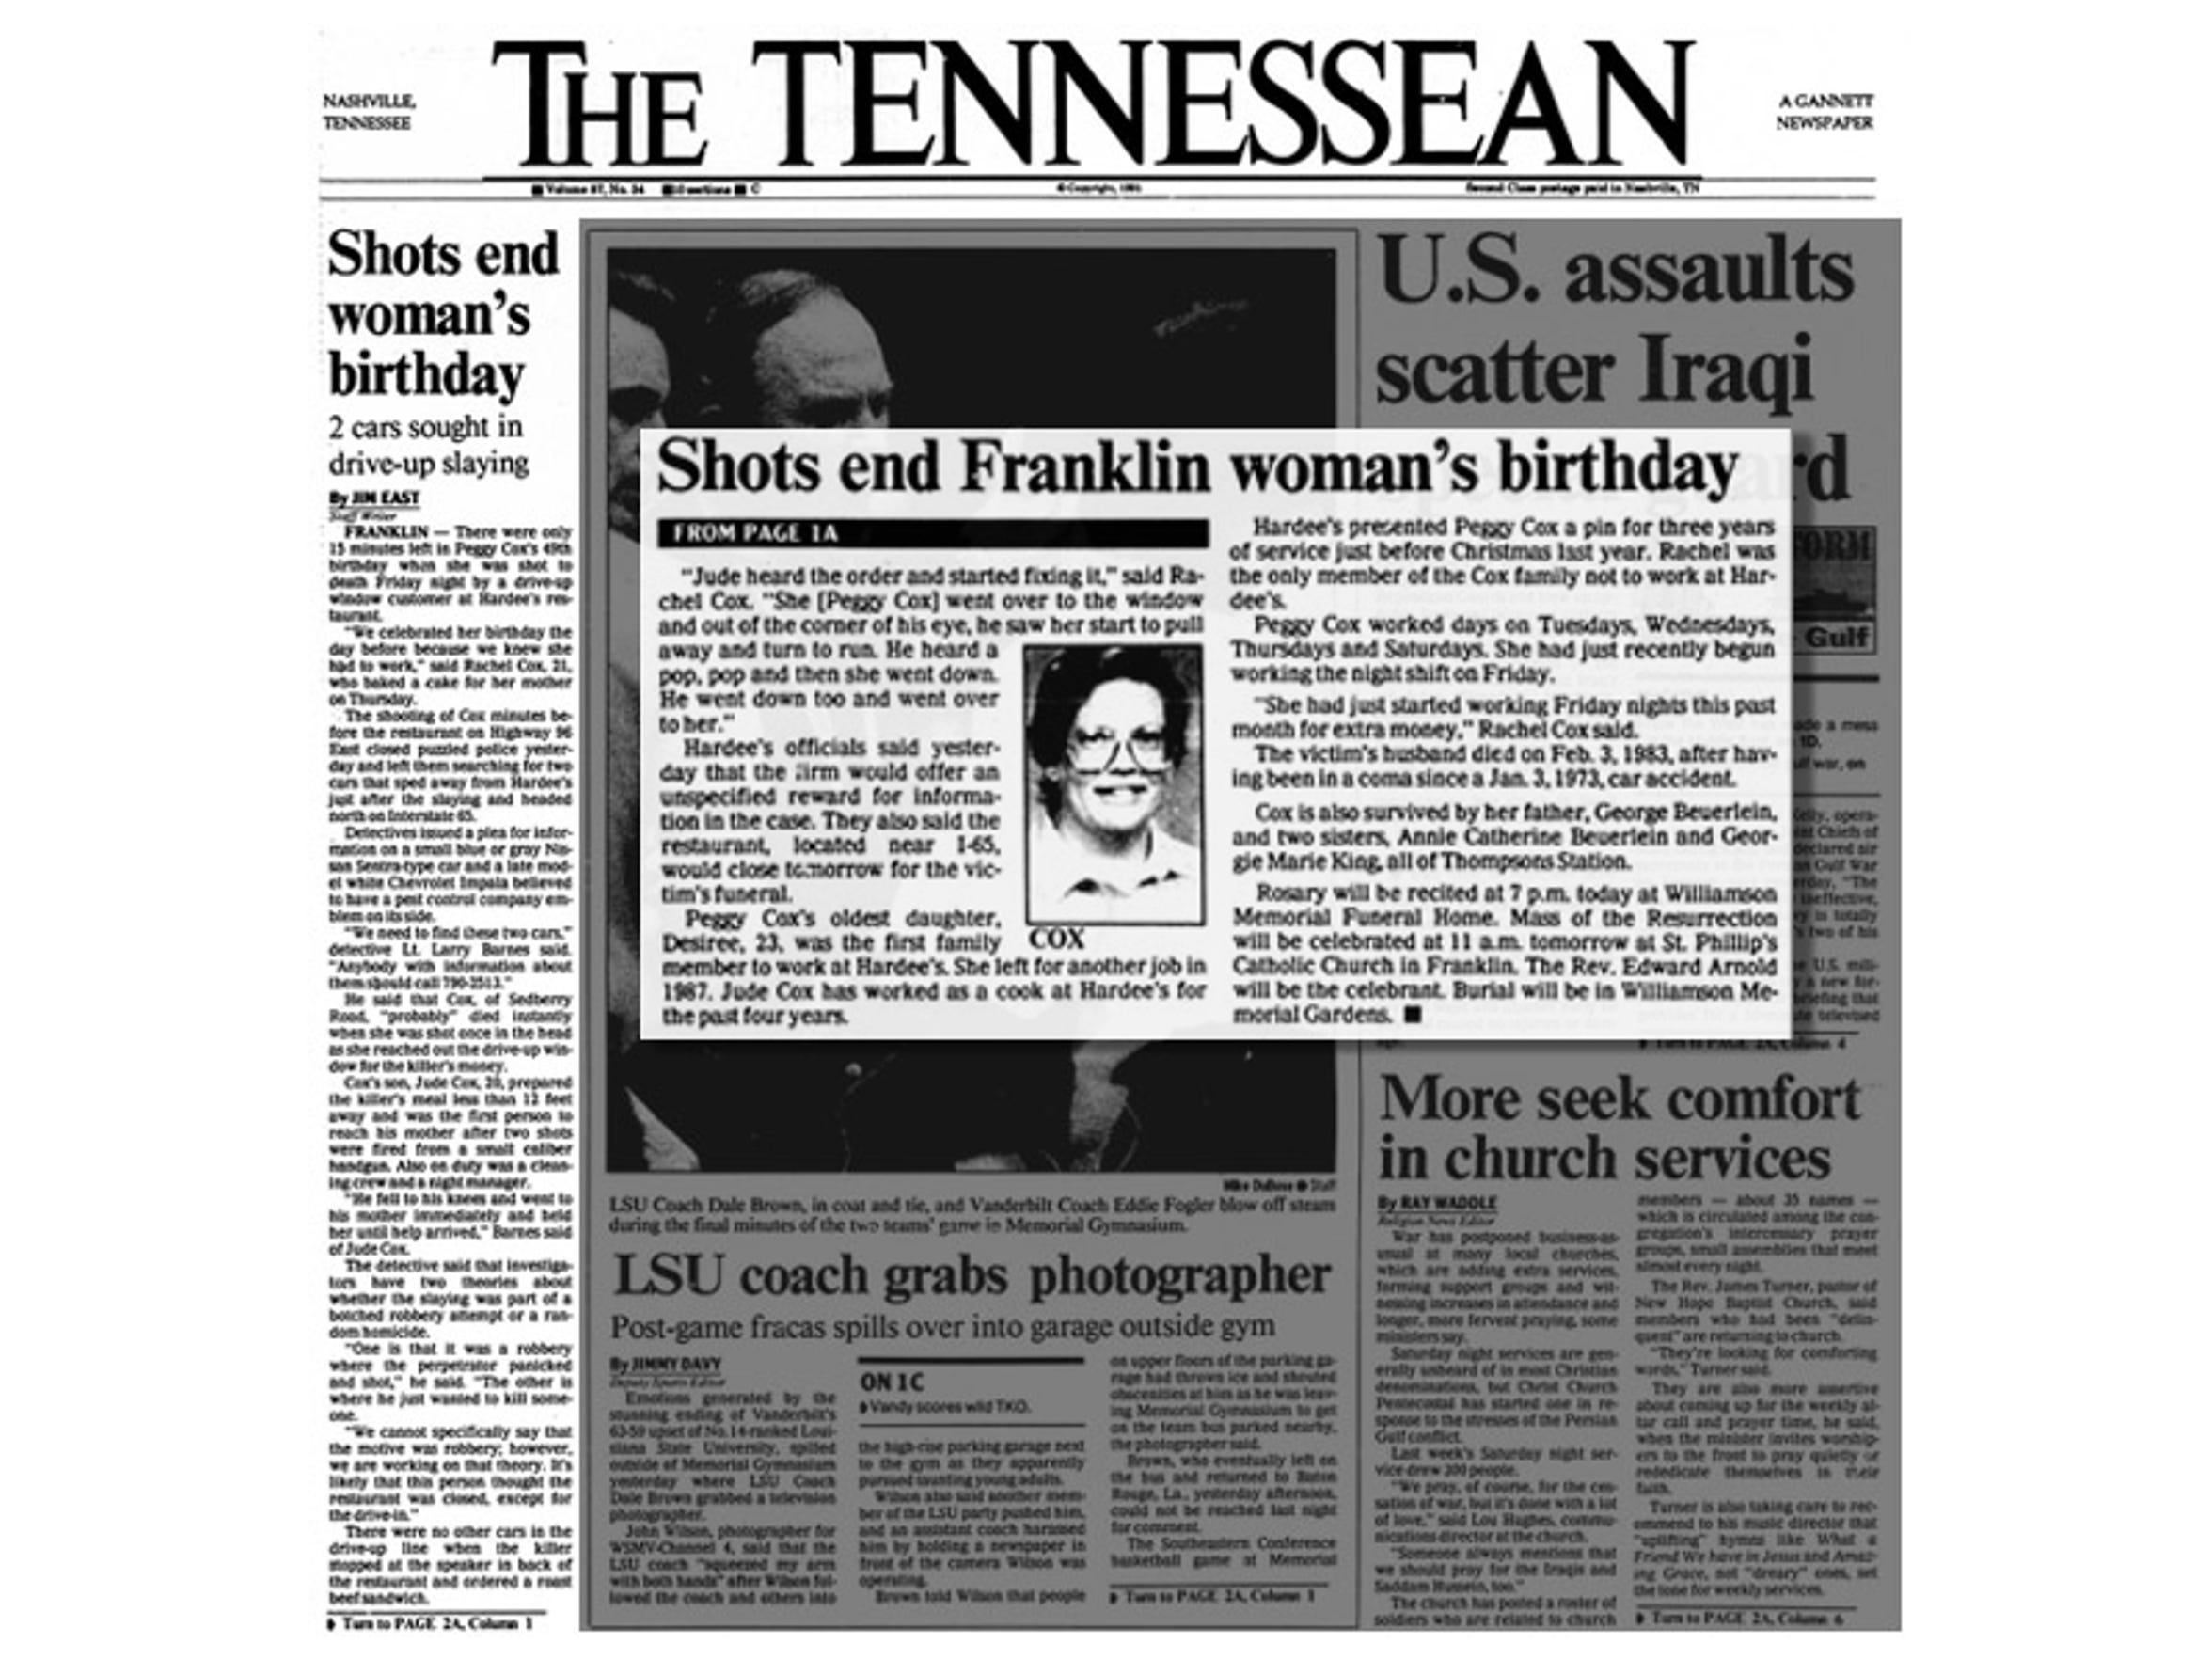 The Tennessean reports Peggy Cox's murder in an article on Feb. 3, 1991.